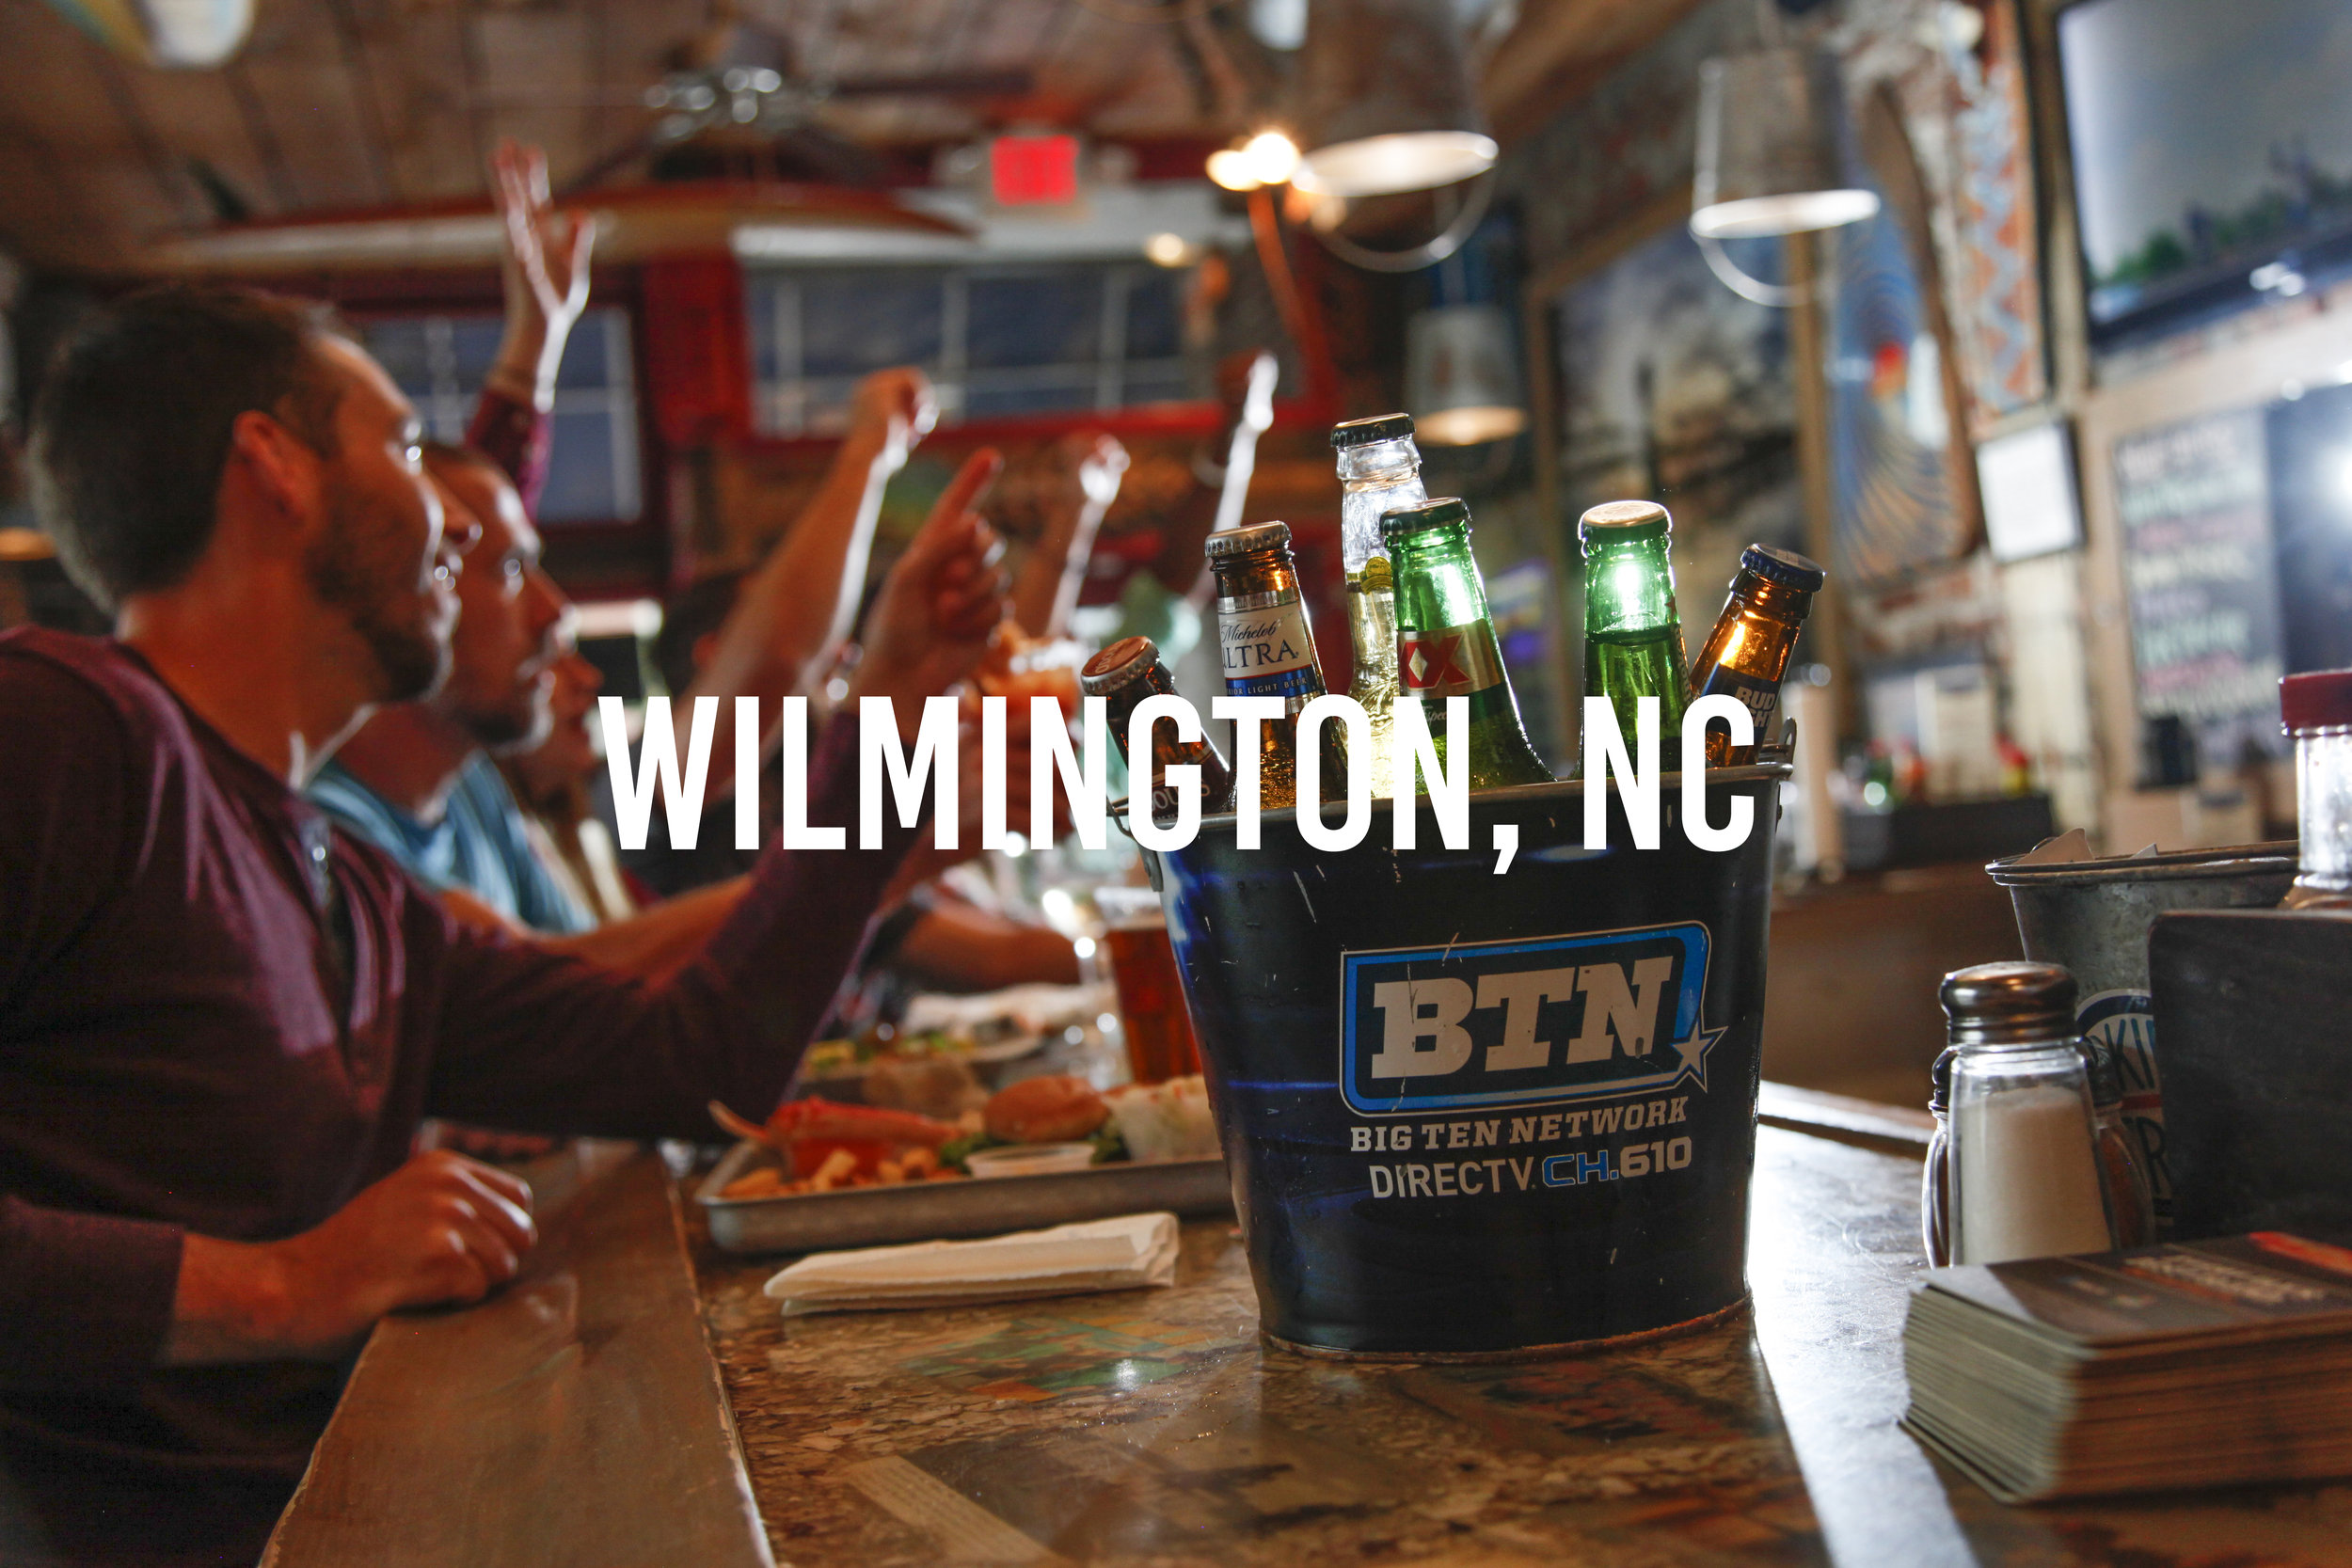 Top 5 Reasons We Want To Be In Augusta -